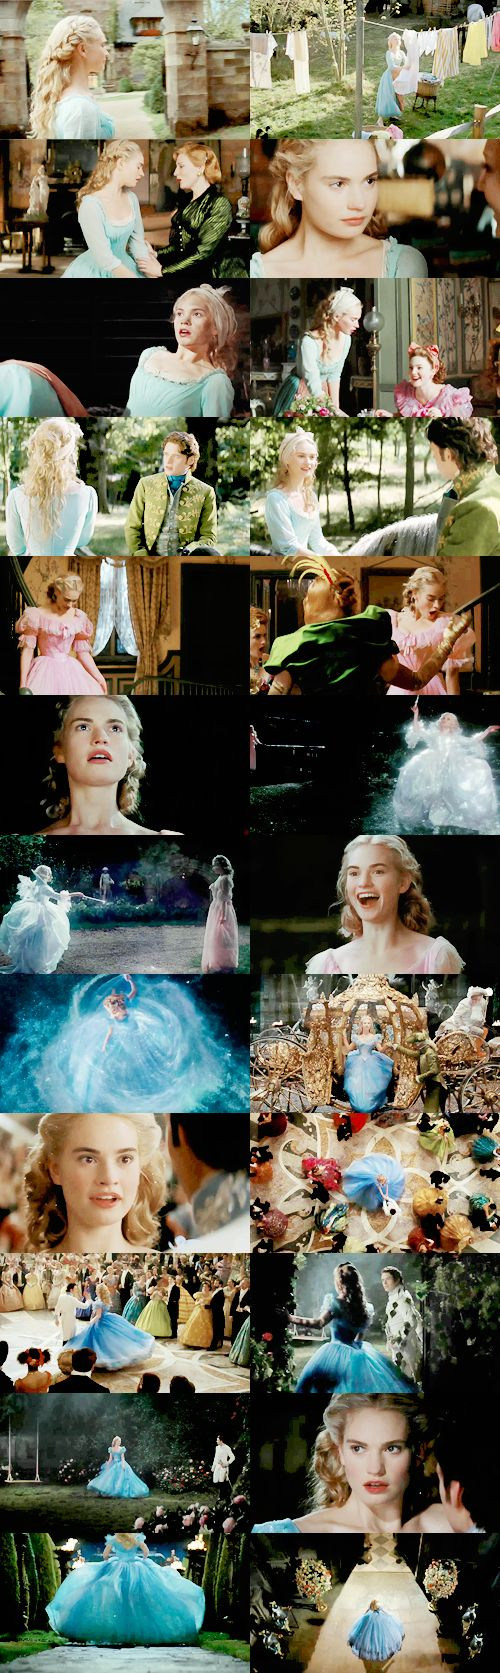 Cinderella (2015) best movie ever!!!